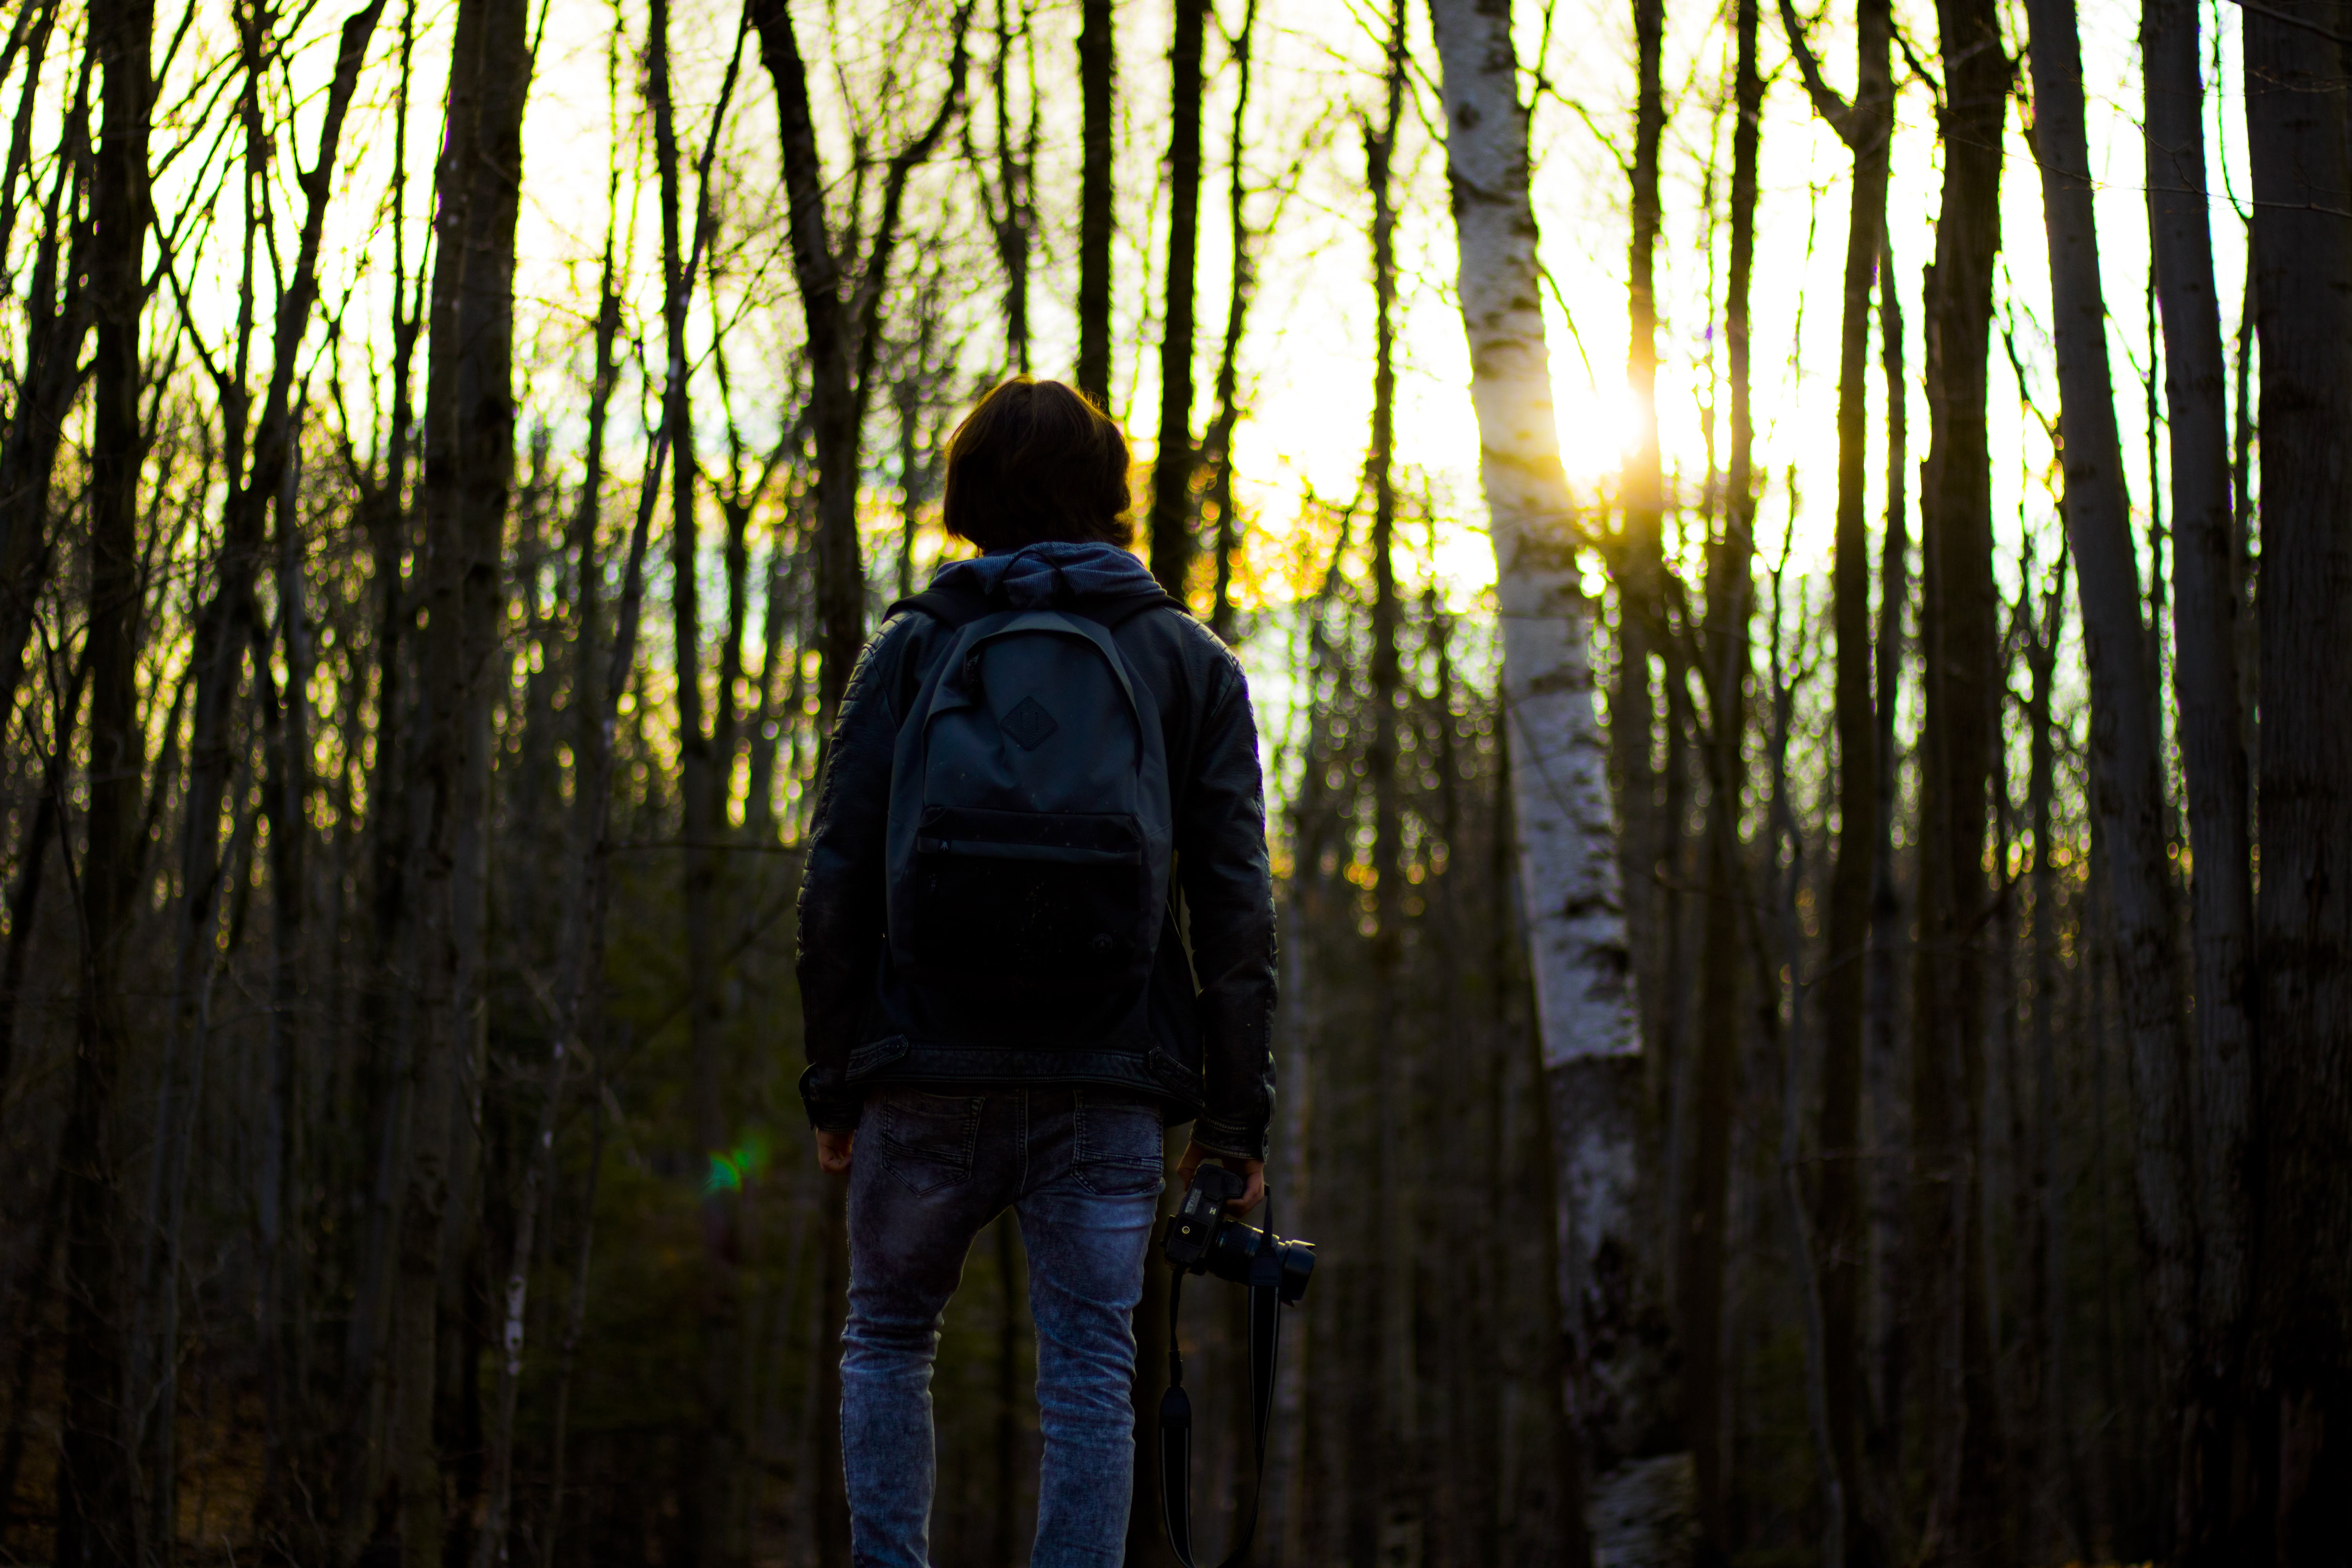 Person in Gray Jacket Wearing Backpack in Forest